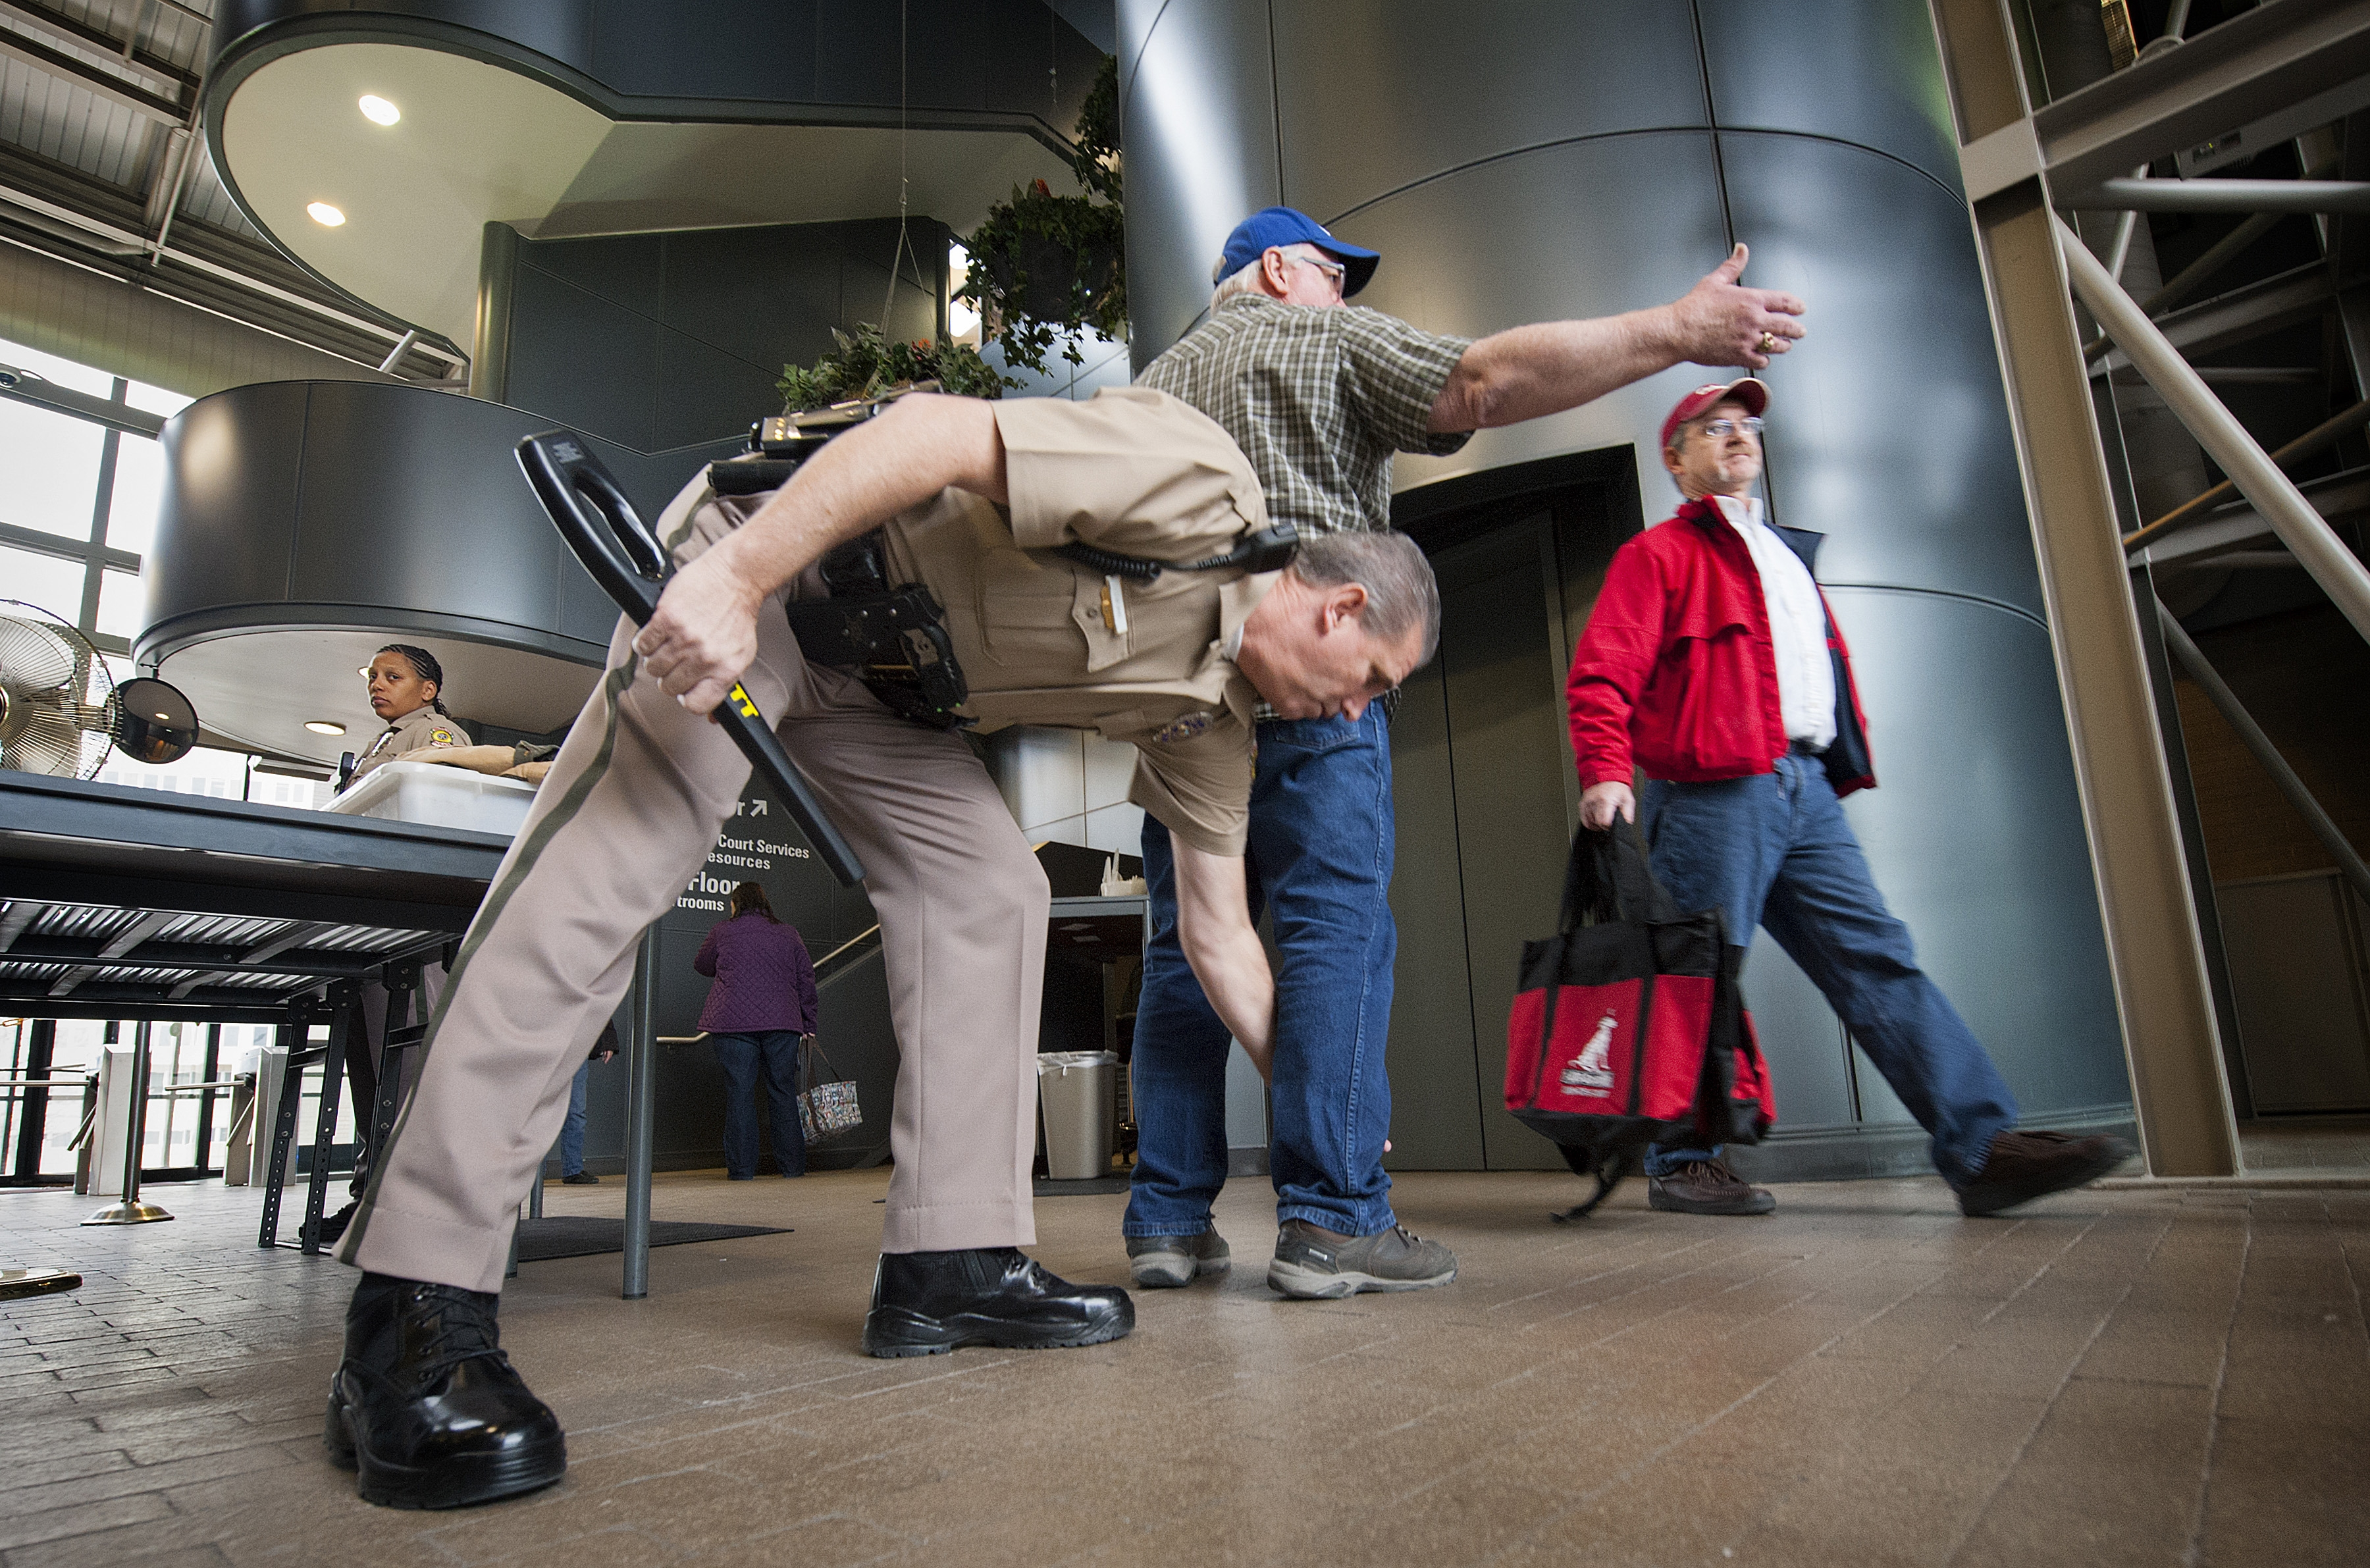 Police officers screen visitors entering City Hall in Wichita, Kan. It is one of the few public buildings in the city that bans concealed weapons, complying with a new ordinance.